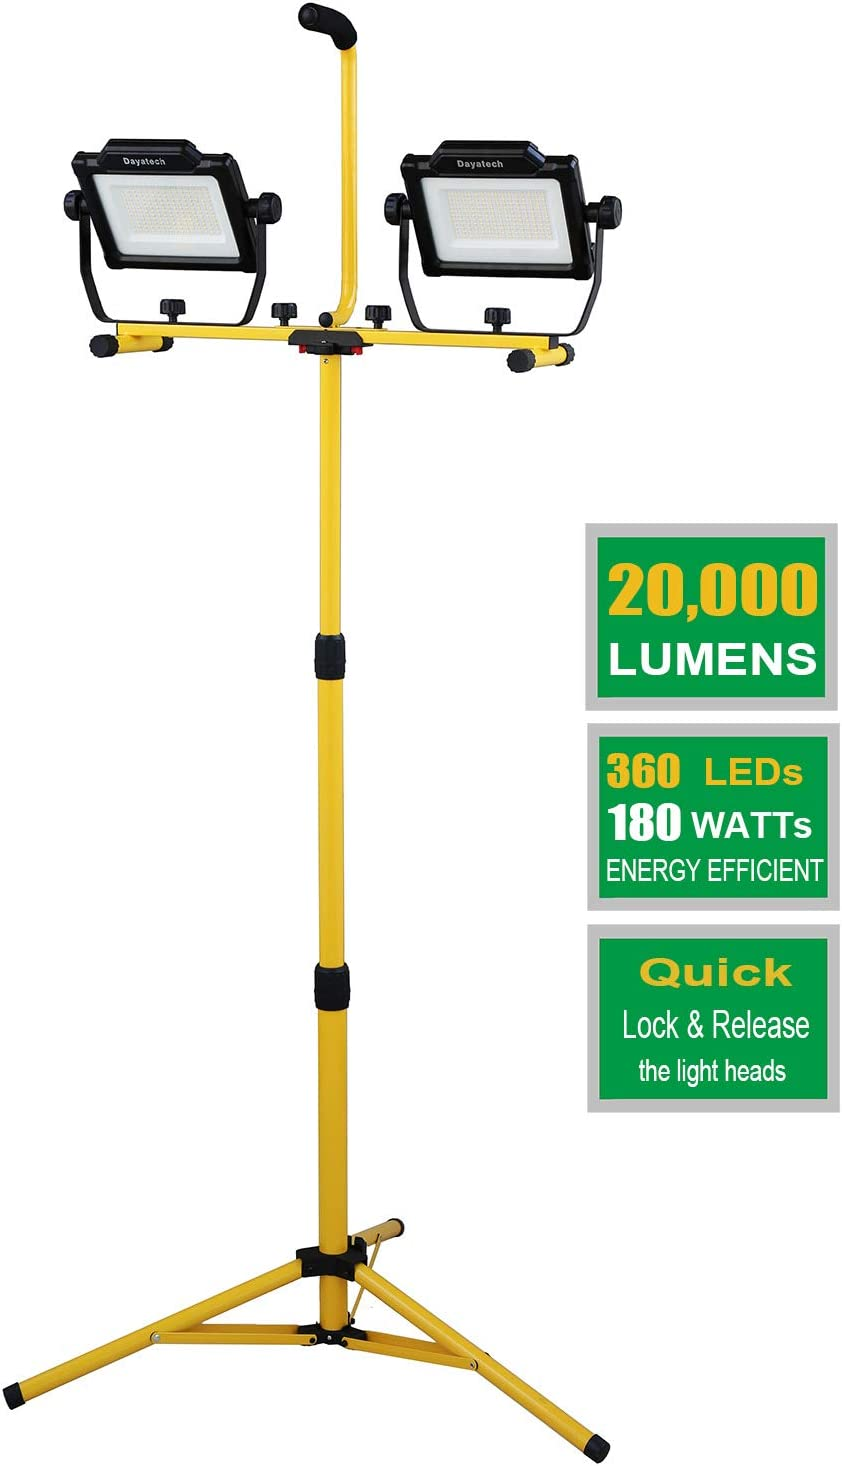 DAYATECH 180W 20000 Lumen Dual-Head LED Metal with Work Discount is also underway Cheap mail order sales Light Te